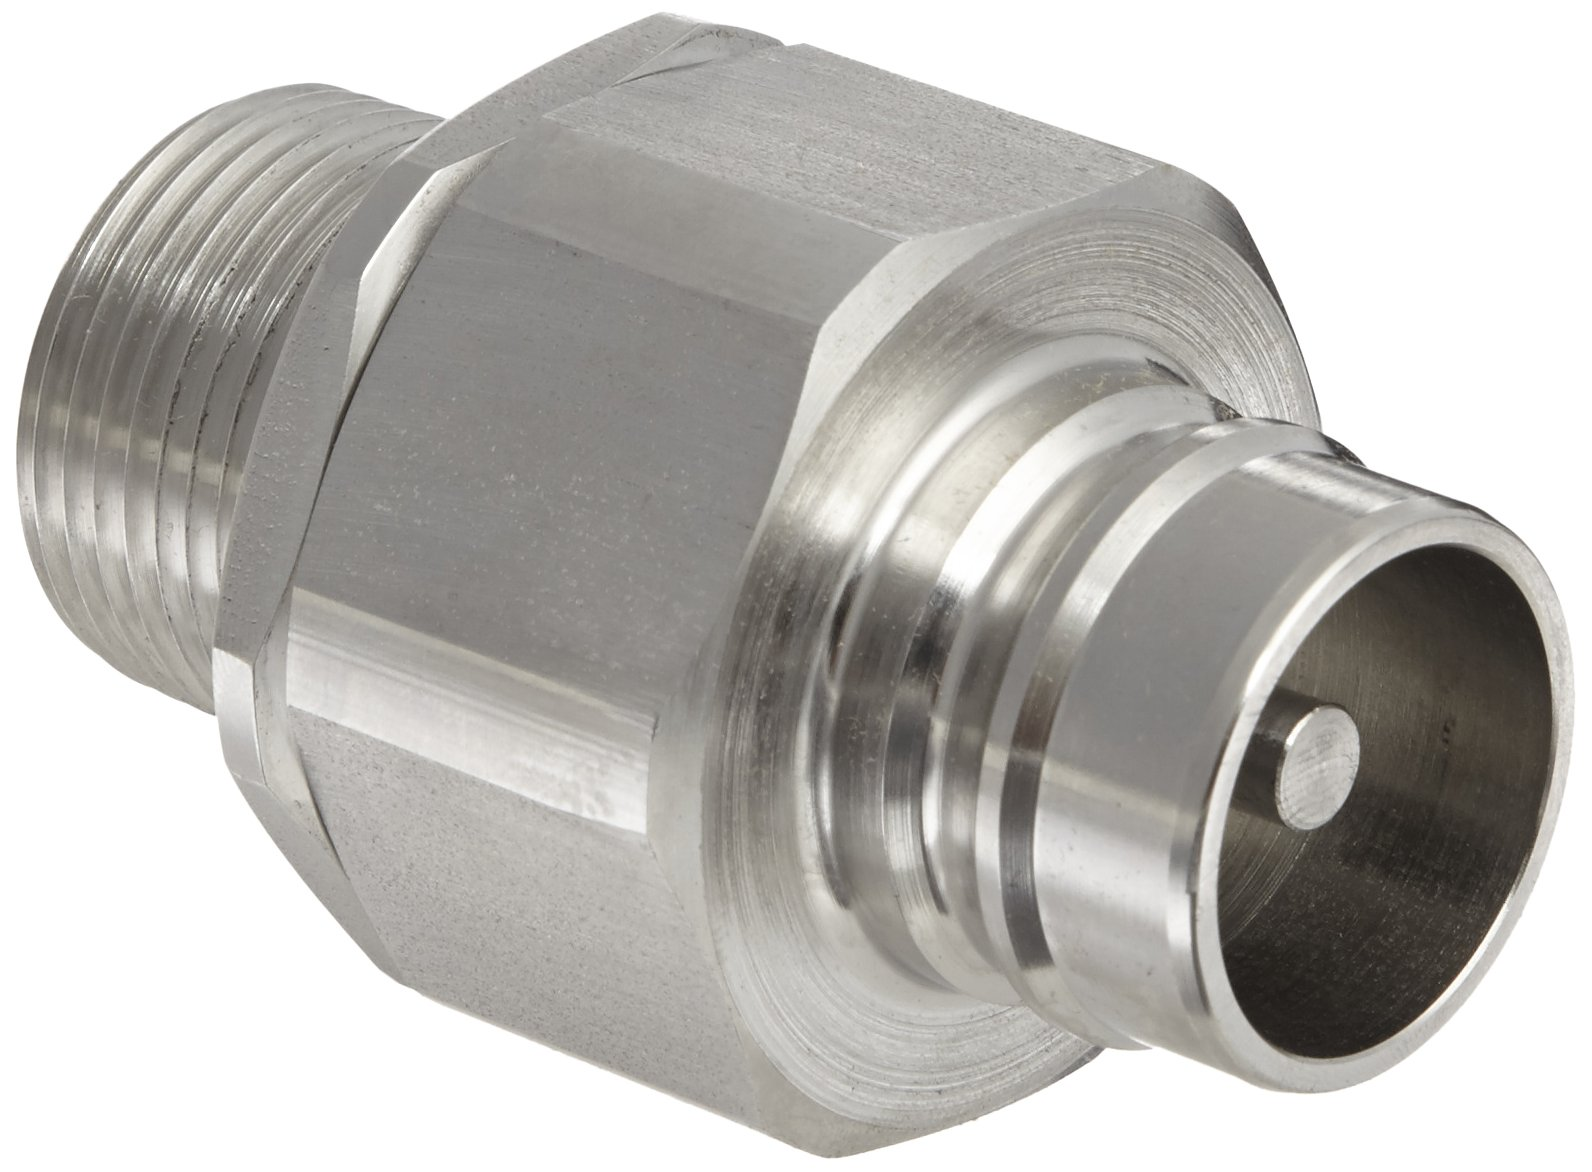 Snap-Tite SVHN16-16M Stainless Steel 316 H-Shape Quick-Disconnect Hose Coupling, Nipple, 1'' NPTF Male x 1'' Coupling Size